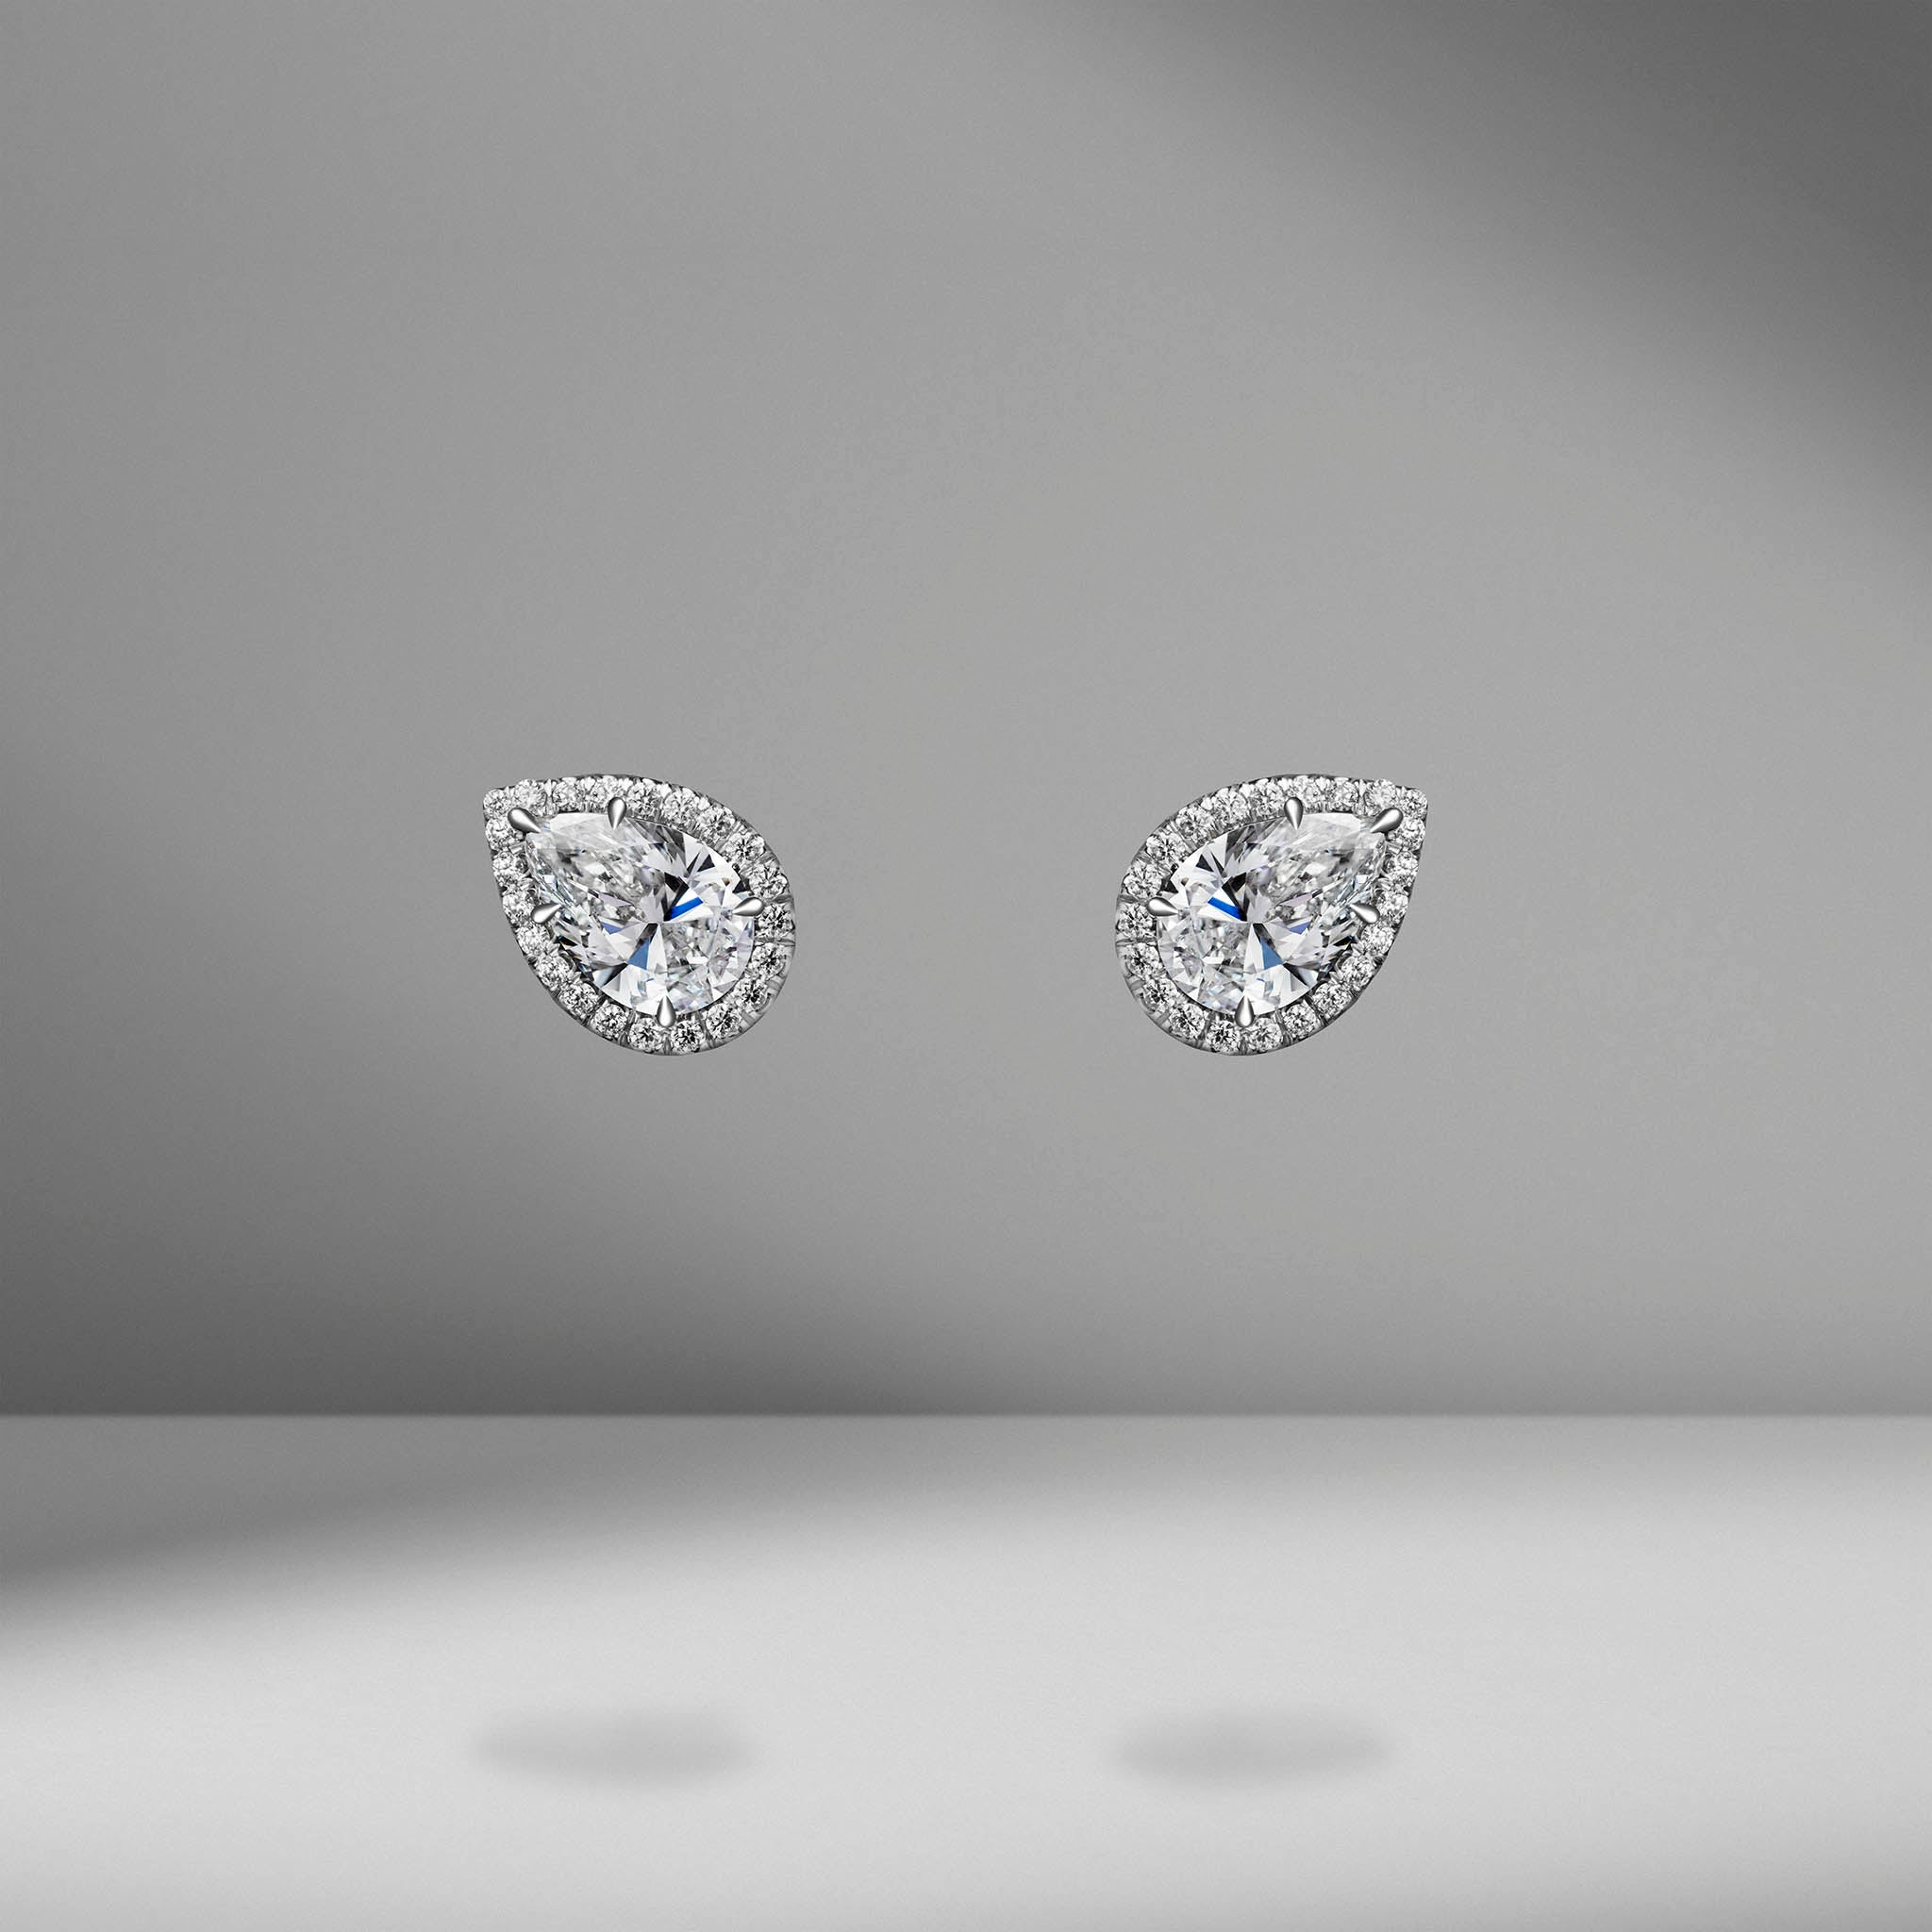 Pear Shape Diamond Studs with Micro Pavé Halo